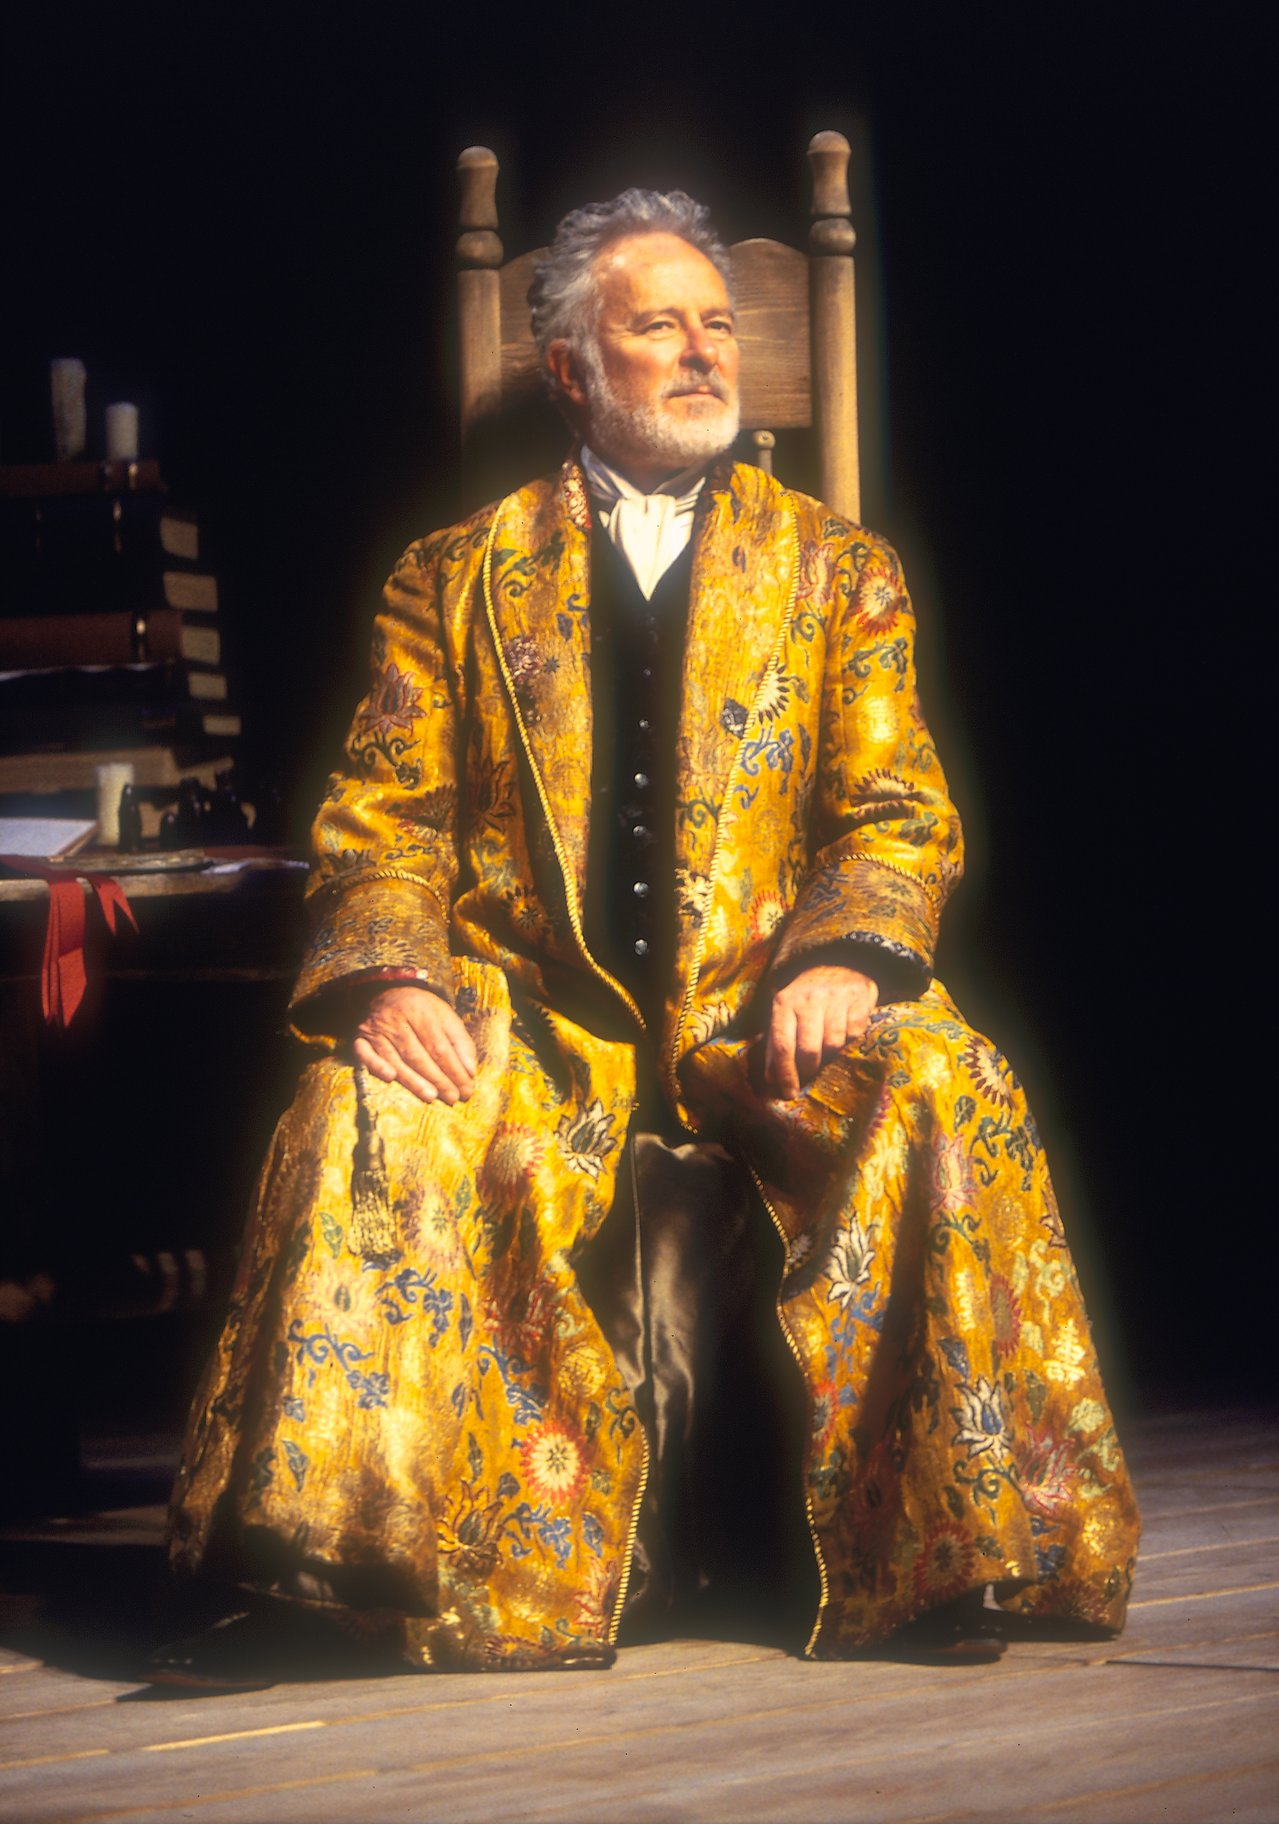 Prospero sits in a chair, wearing an intricate golden robe.